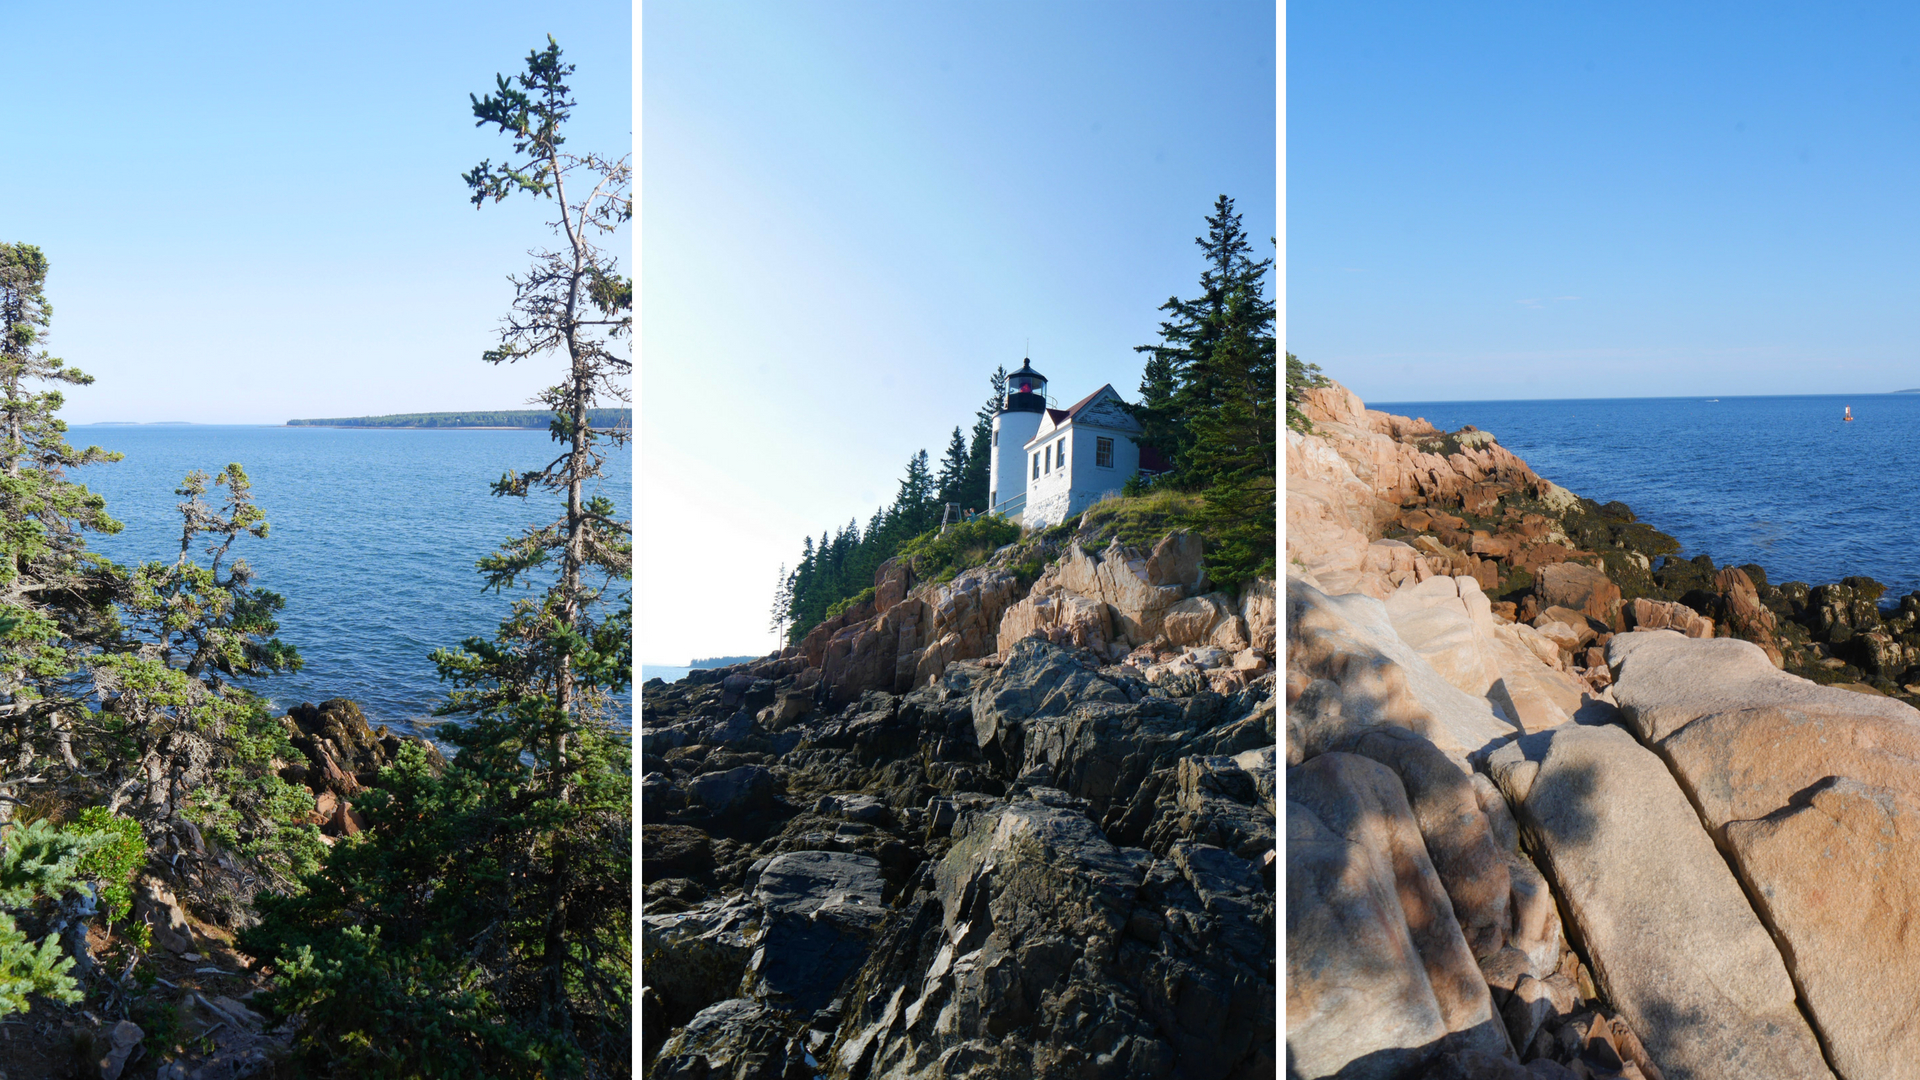 Bass harbor lighthouse acadia national park main etats-unis blog voyage road-trip arpenter le chemin